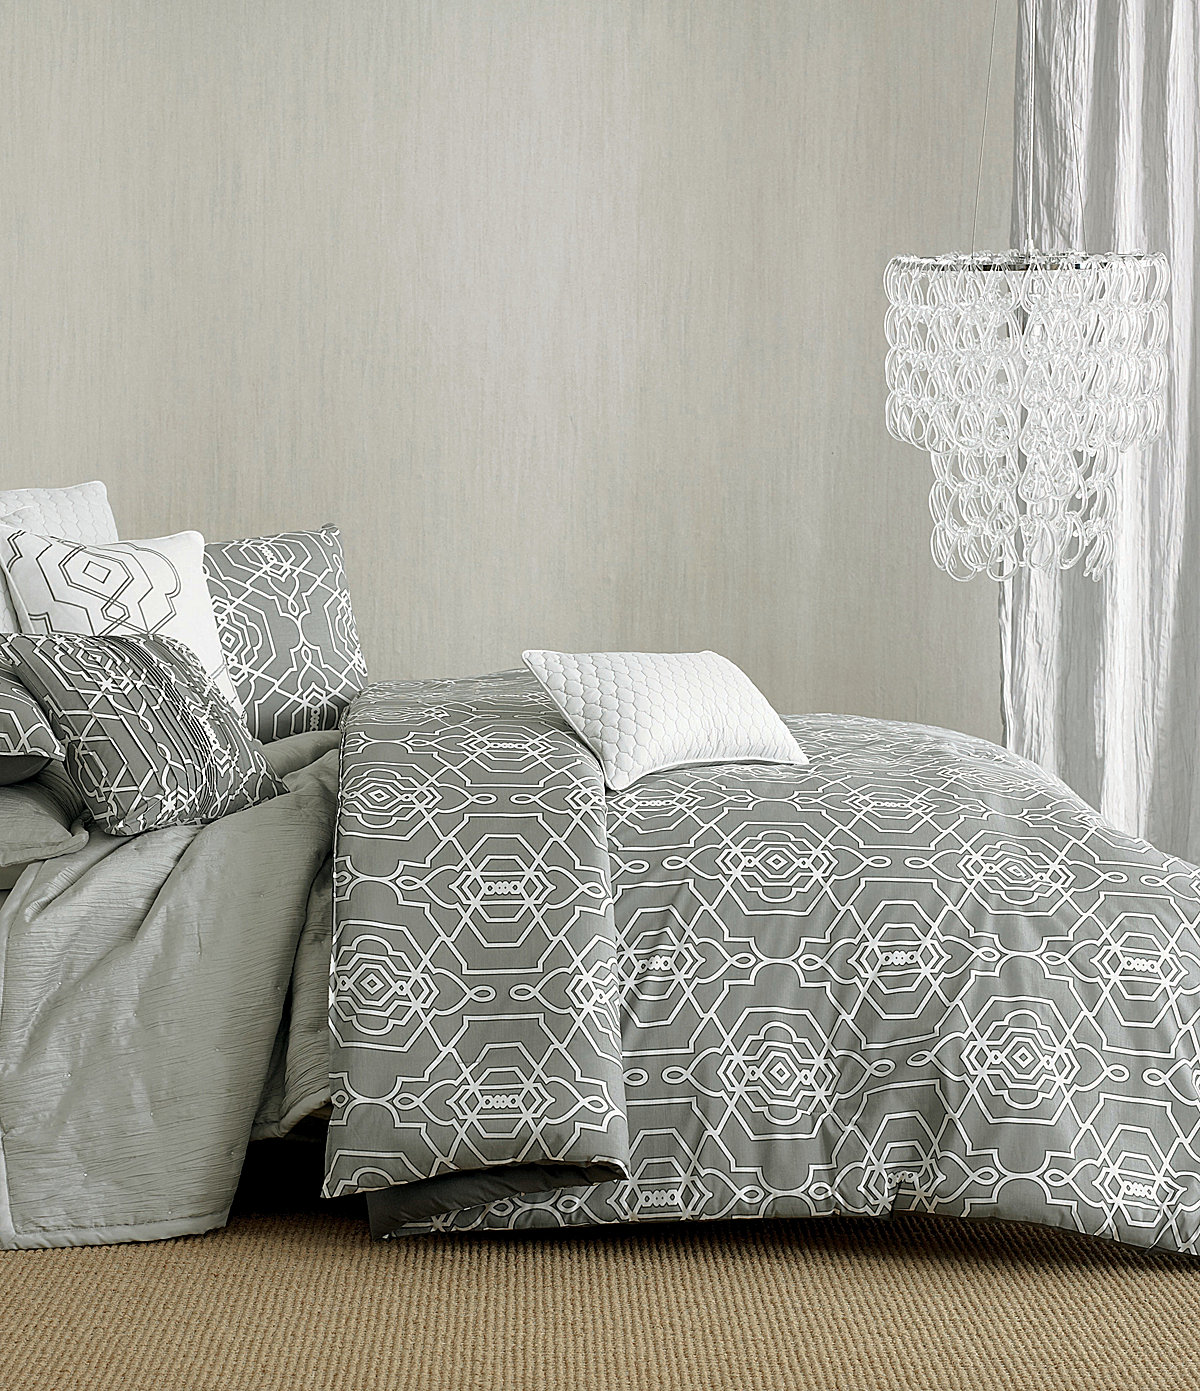 Modern Furniture Design: 2013 Candice Olson Bedding Collection From  Dillardu0027s